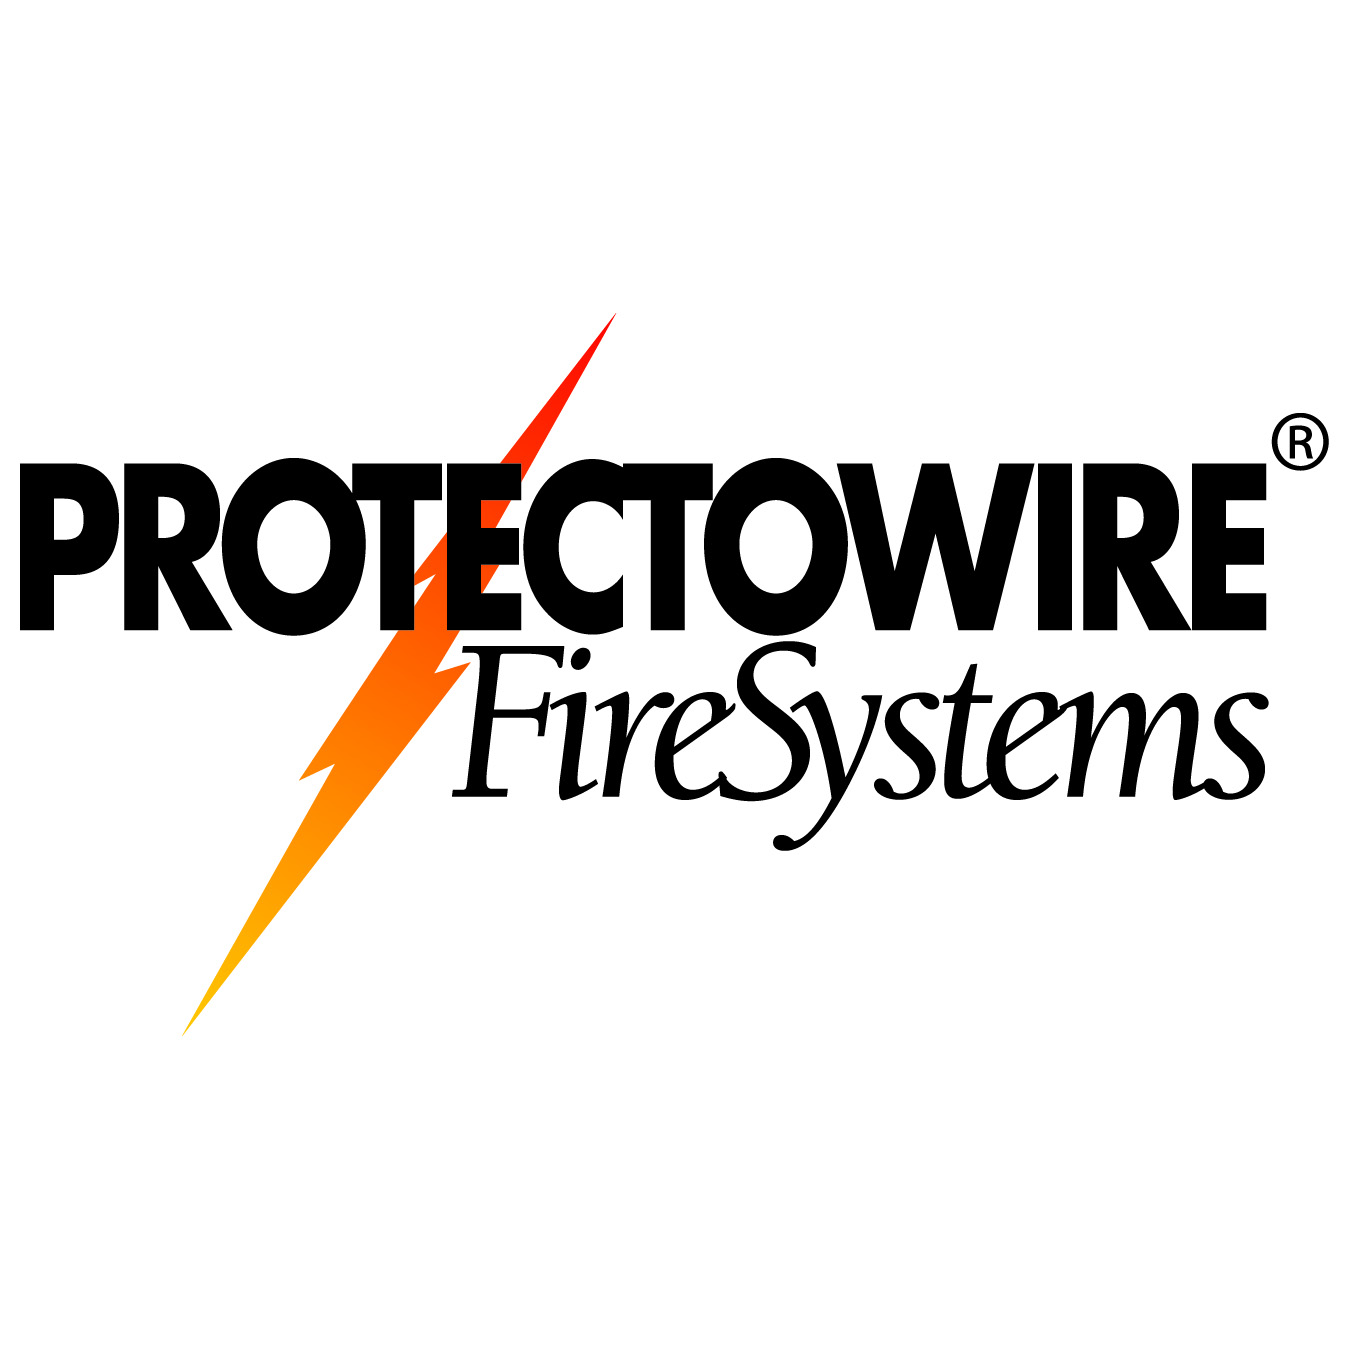 Protectowire Company Inc